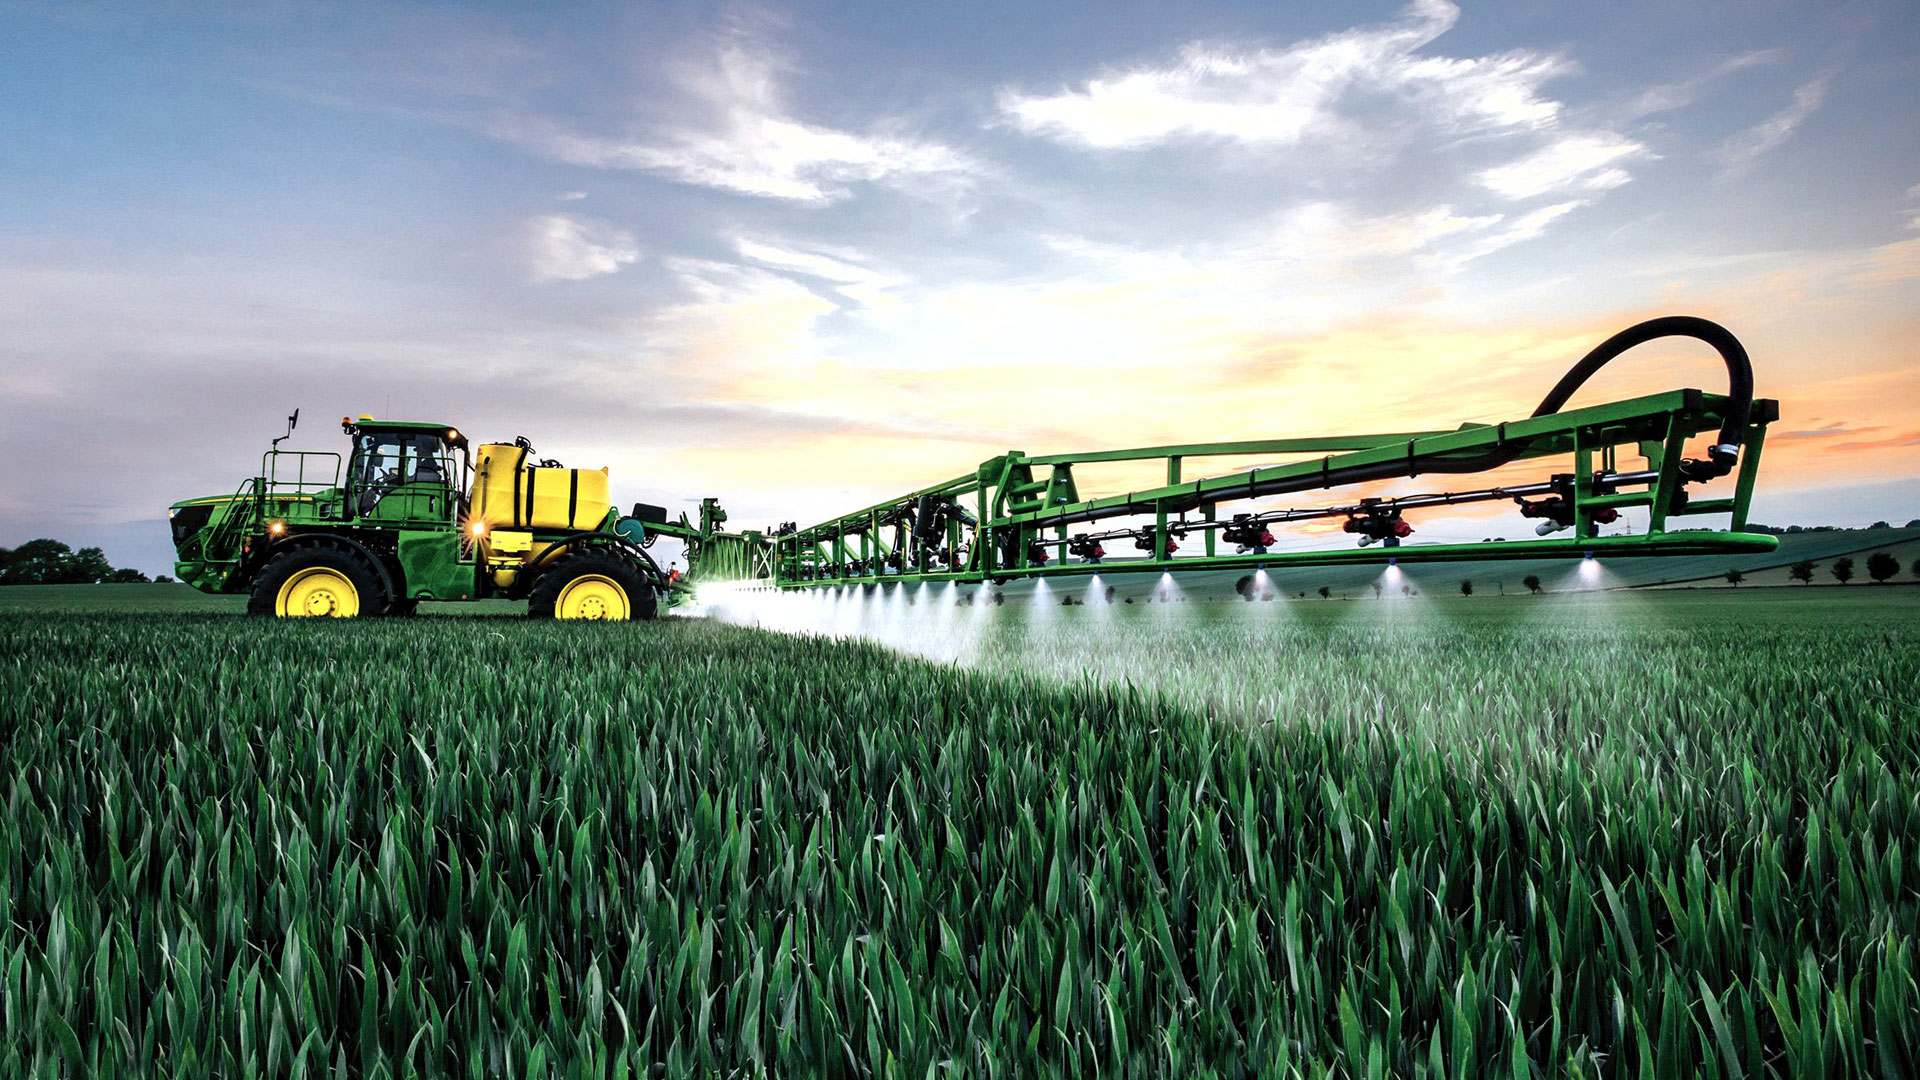 image of sprayer in crop field